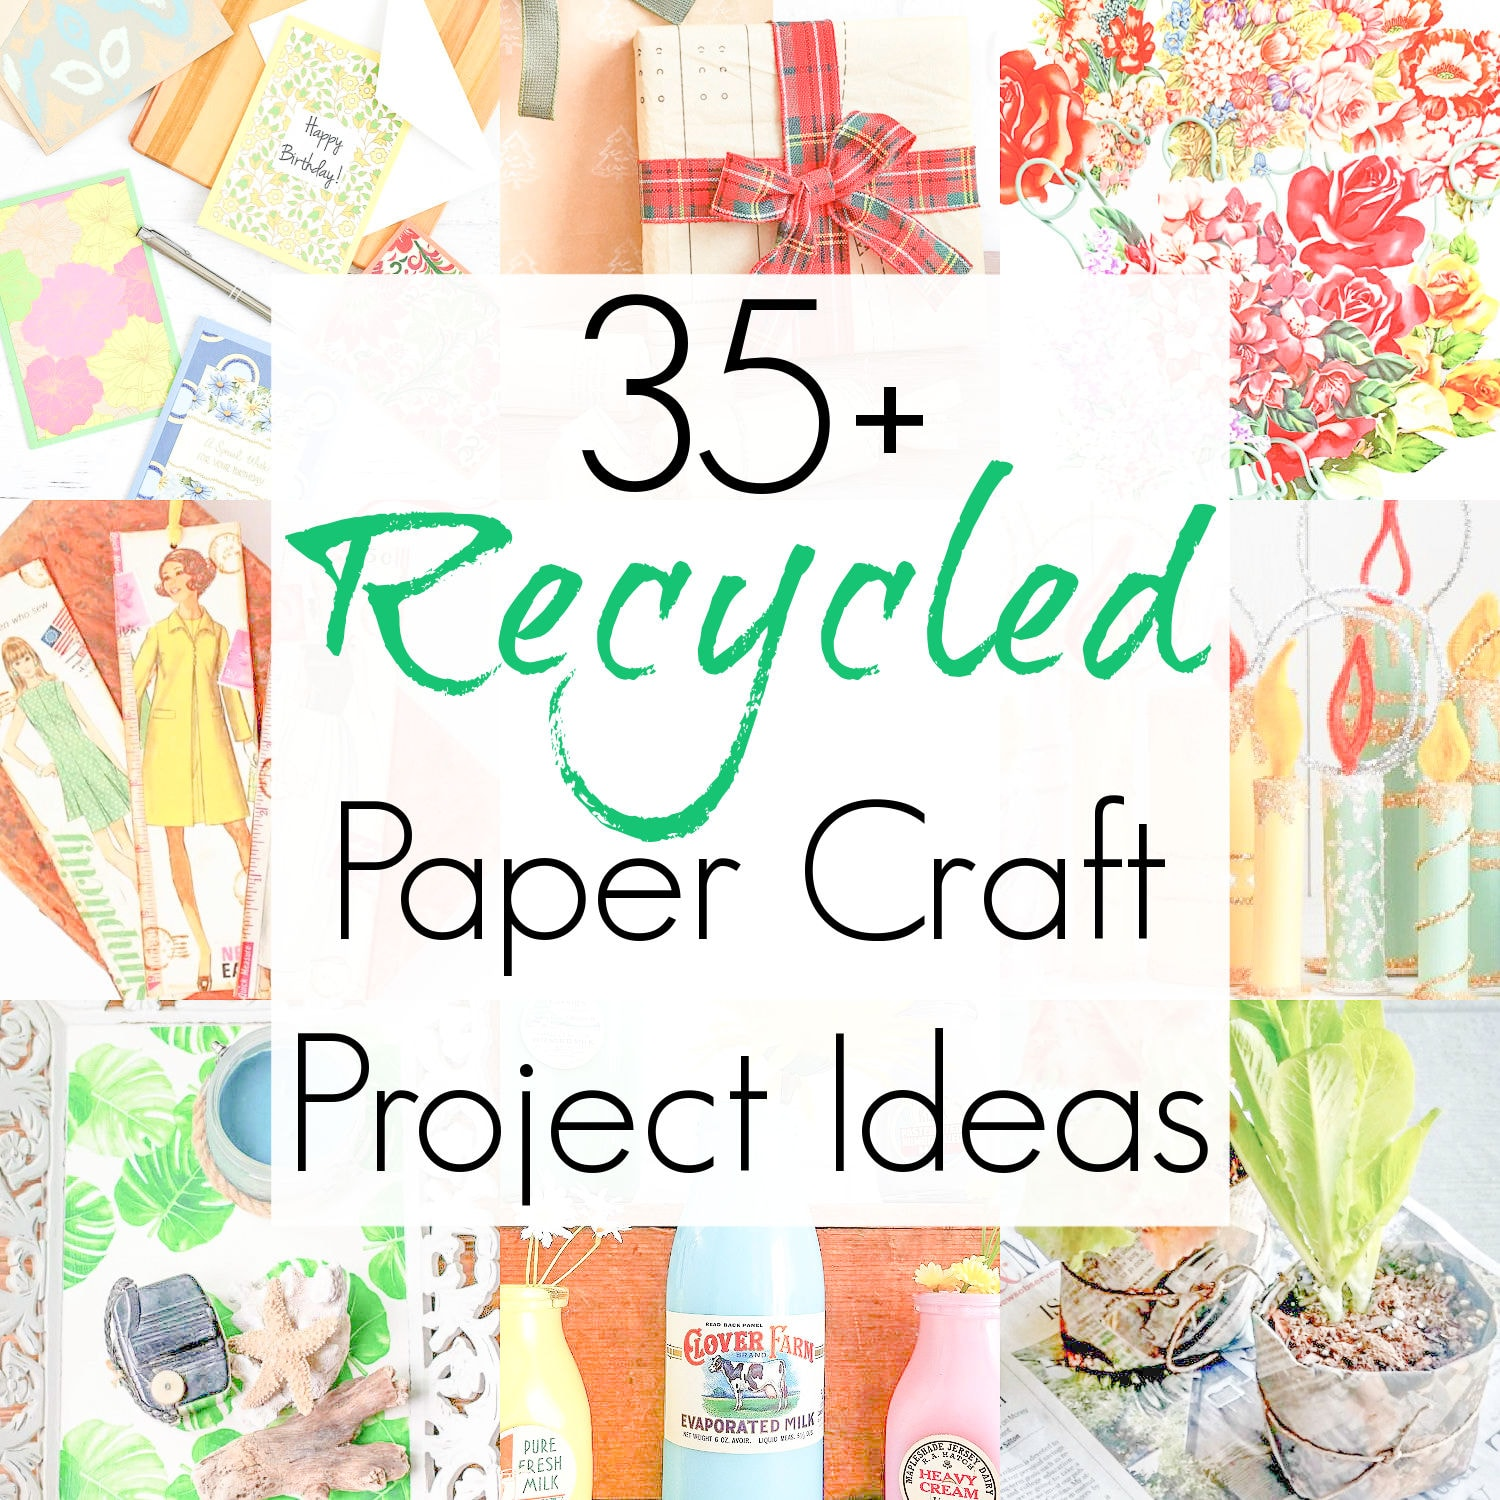 Recycled Paper Crafts for Vintage Ephemera and Other Upcycled Paper